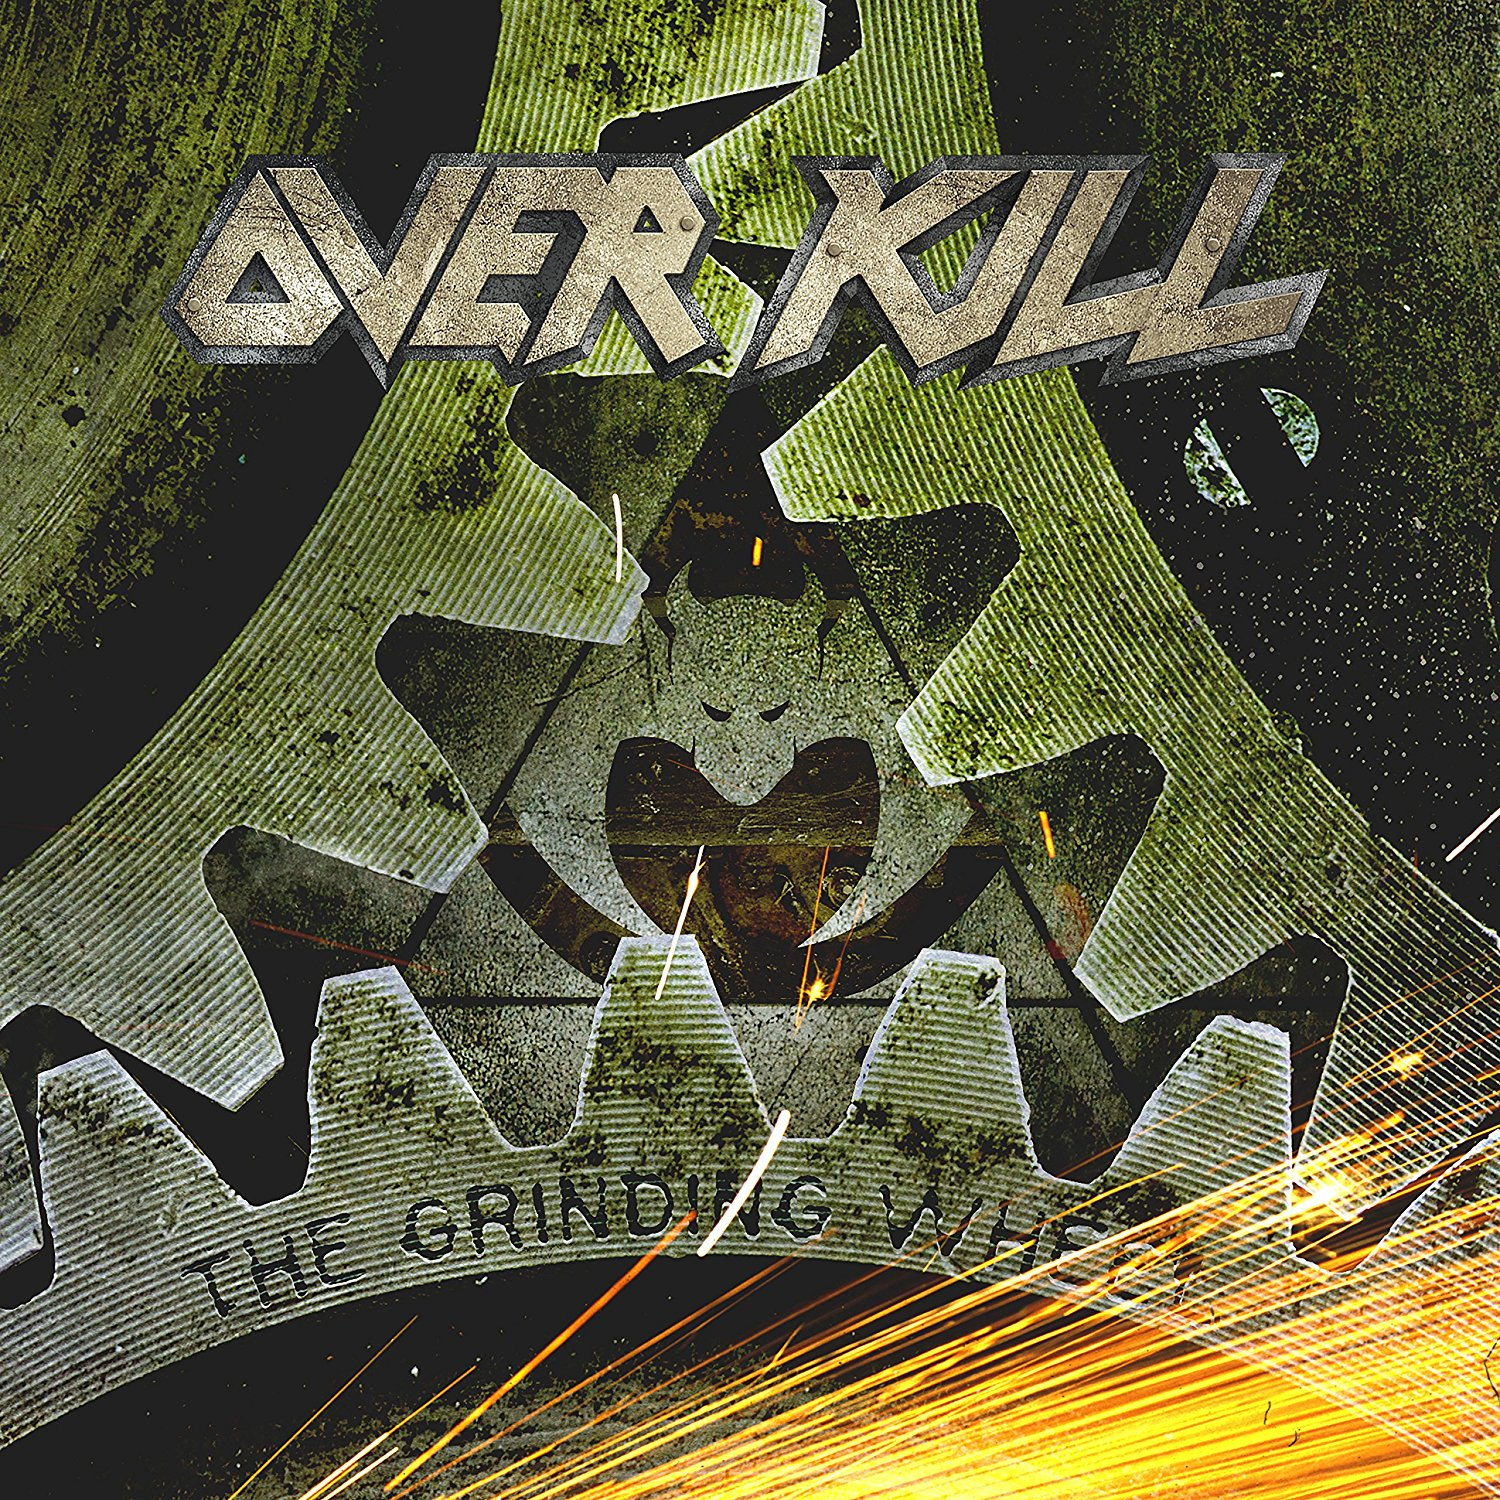 Overkill : The Grinding Wheel